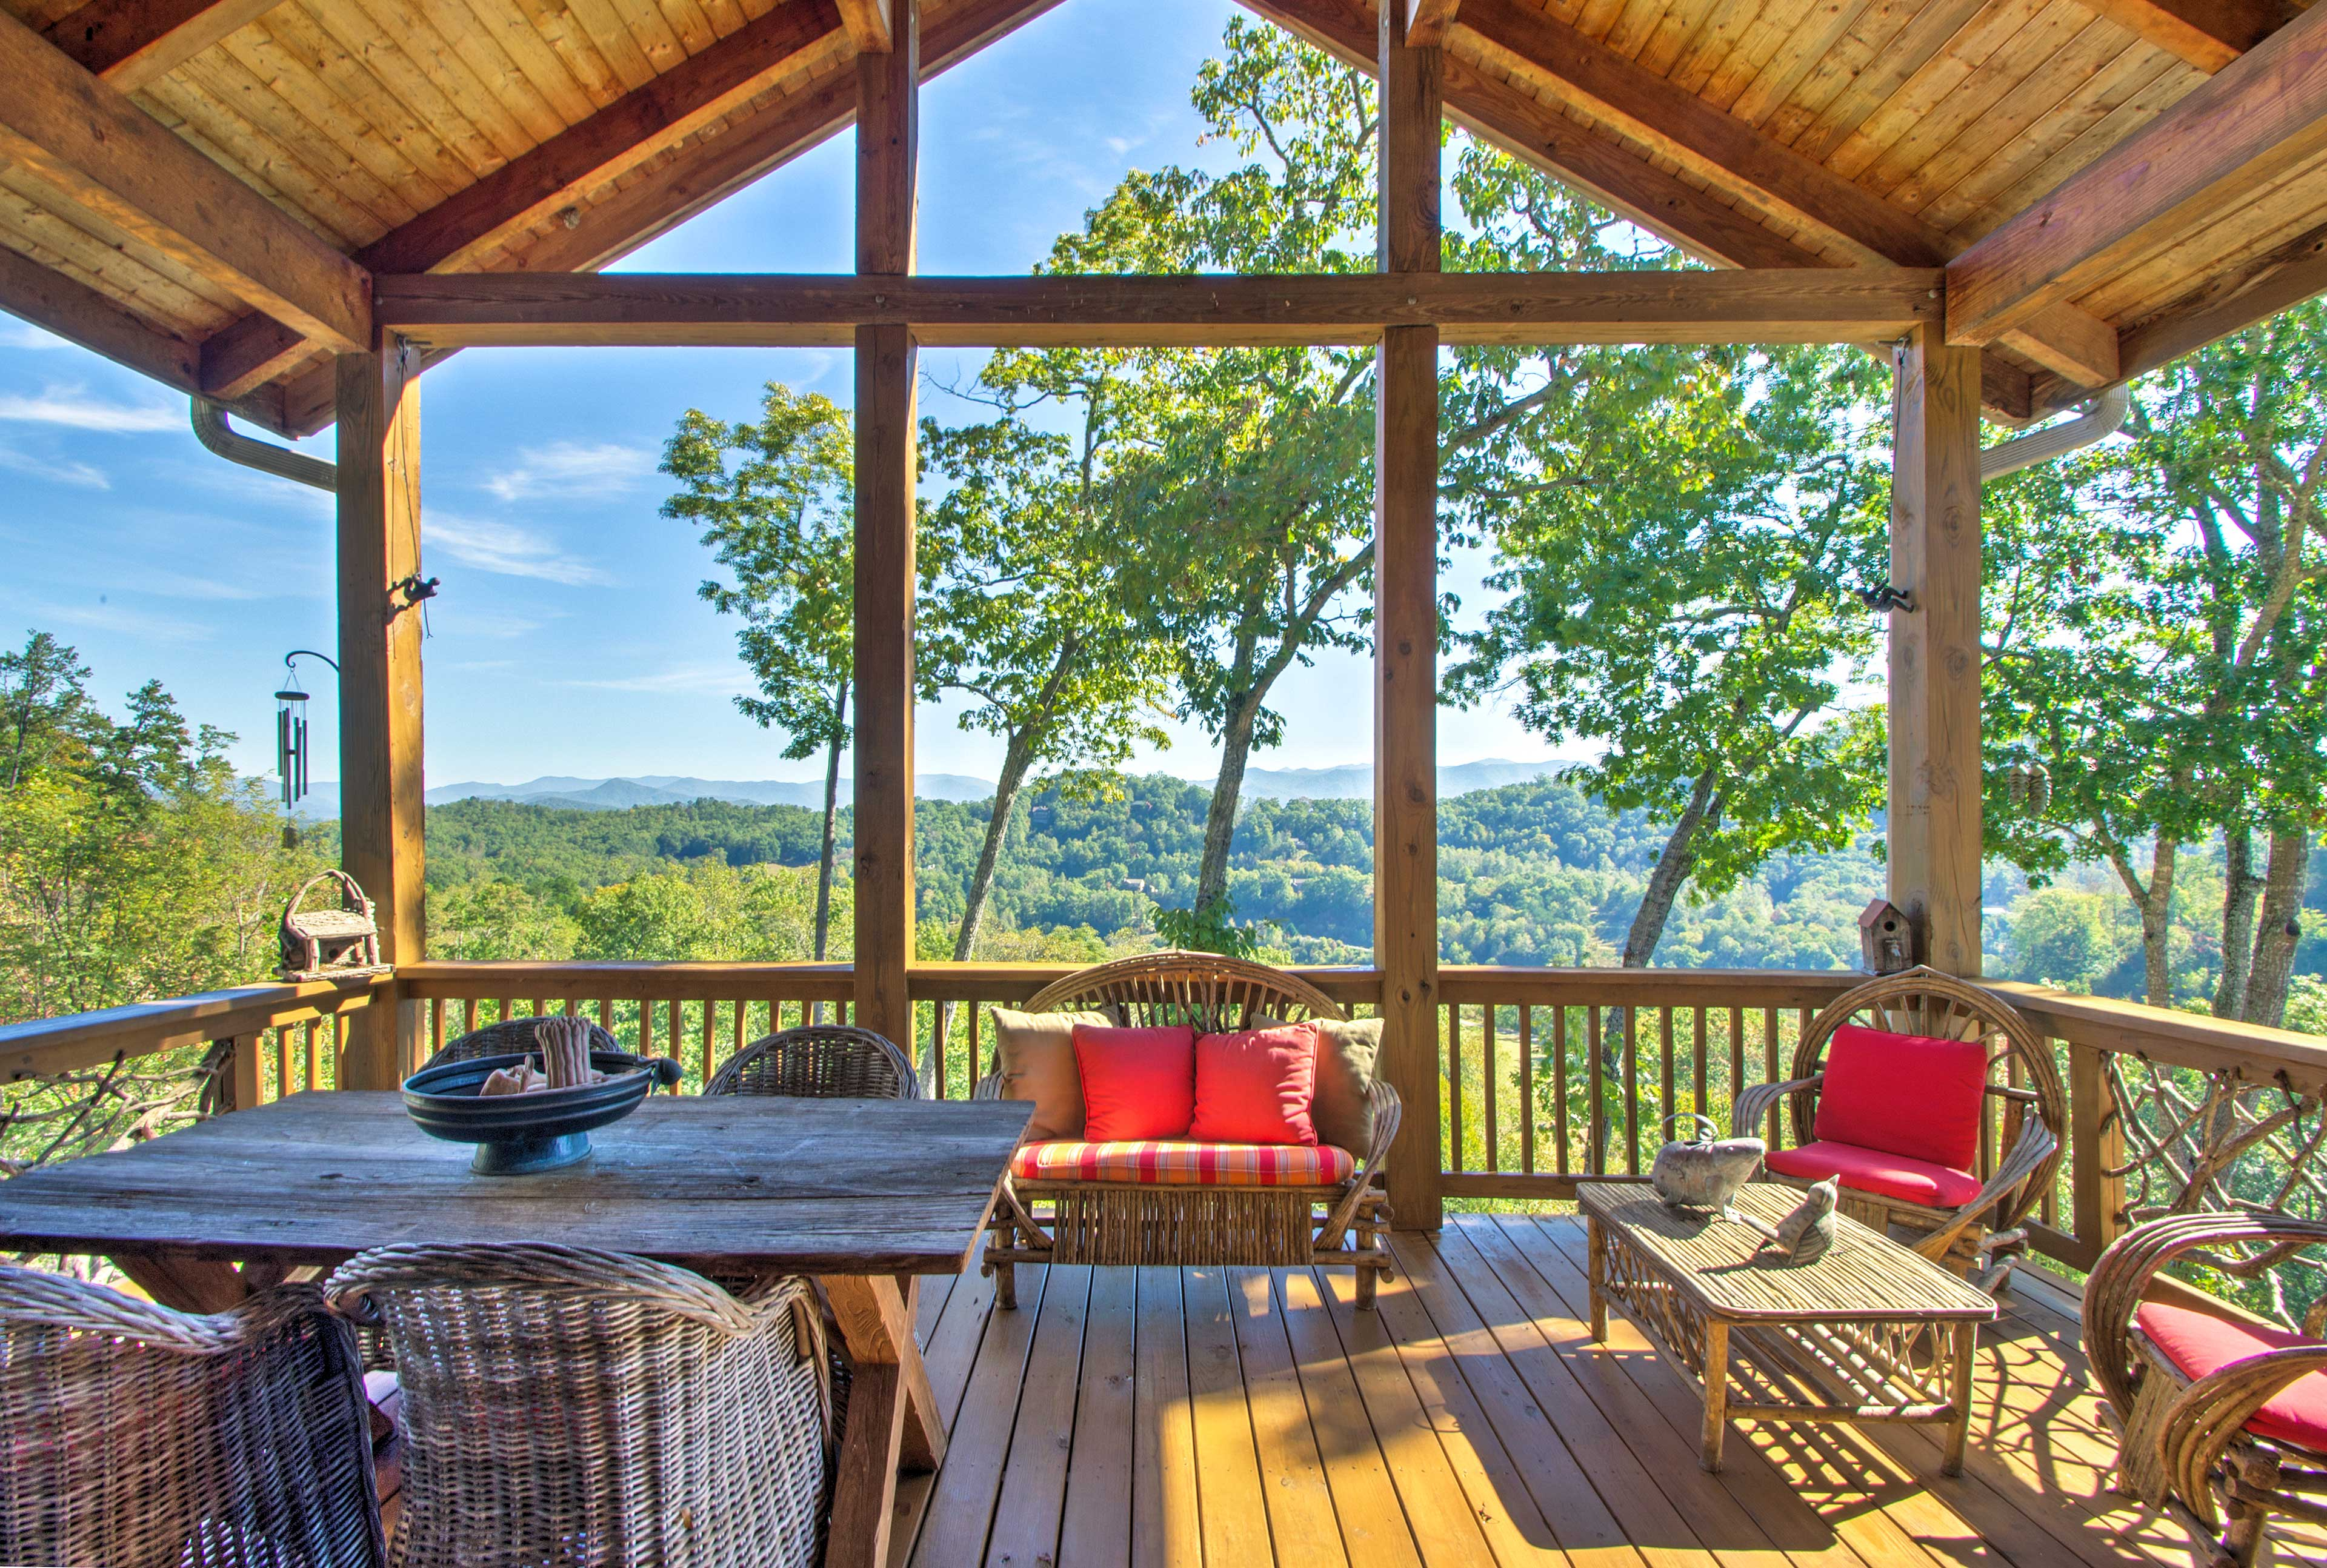 Enjoy Smoky Mountain views from this vacation rental condo in Whittier.